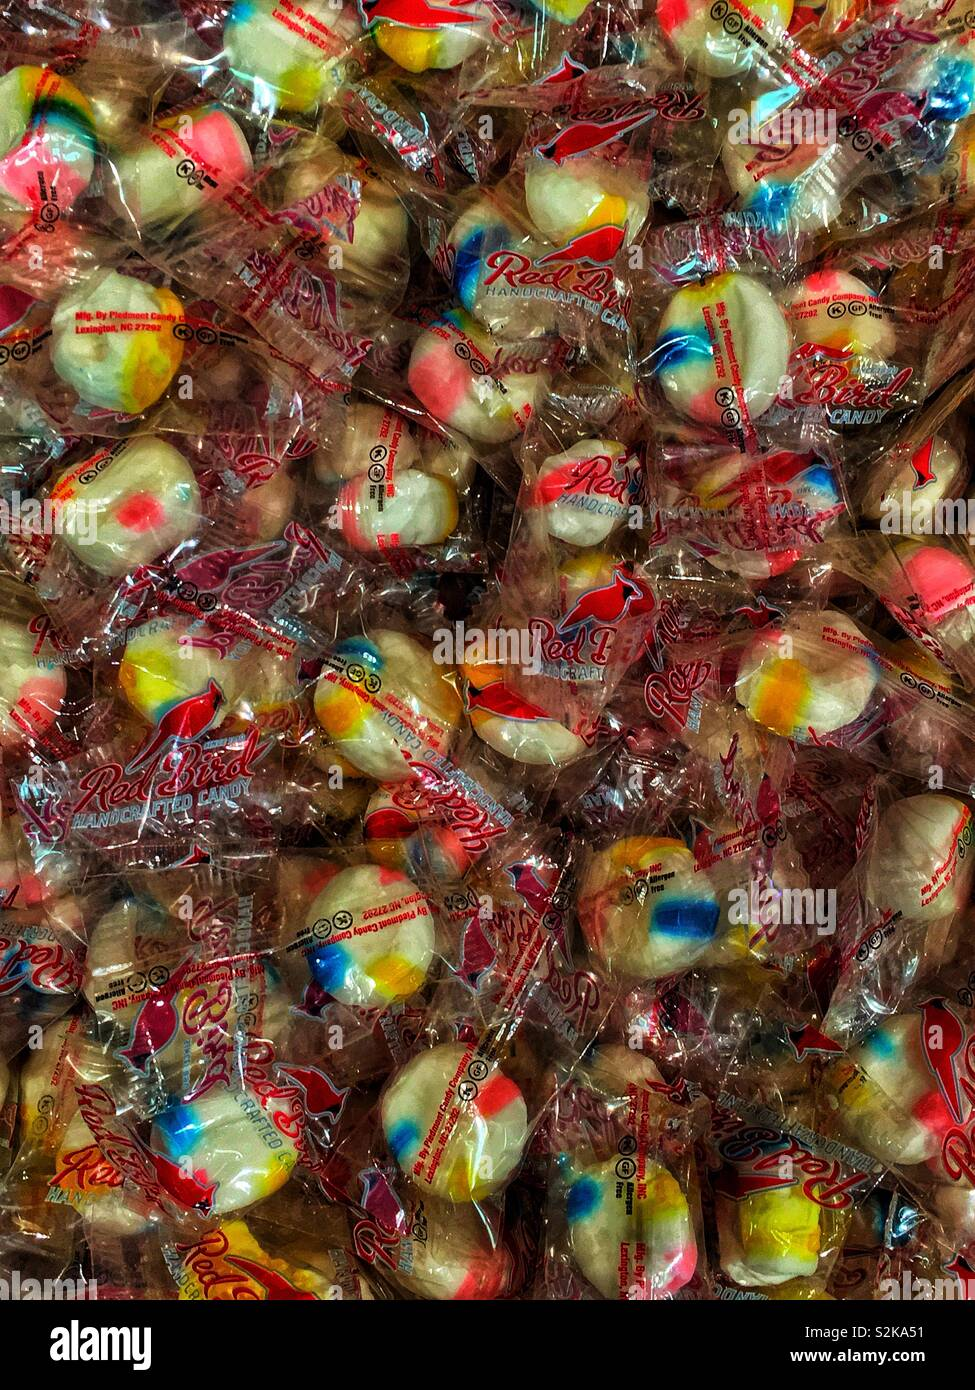 Full frame of Red Bird single wrapped hard candies piled high in a bin for sale. - Stock Image